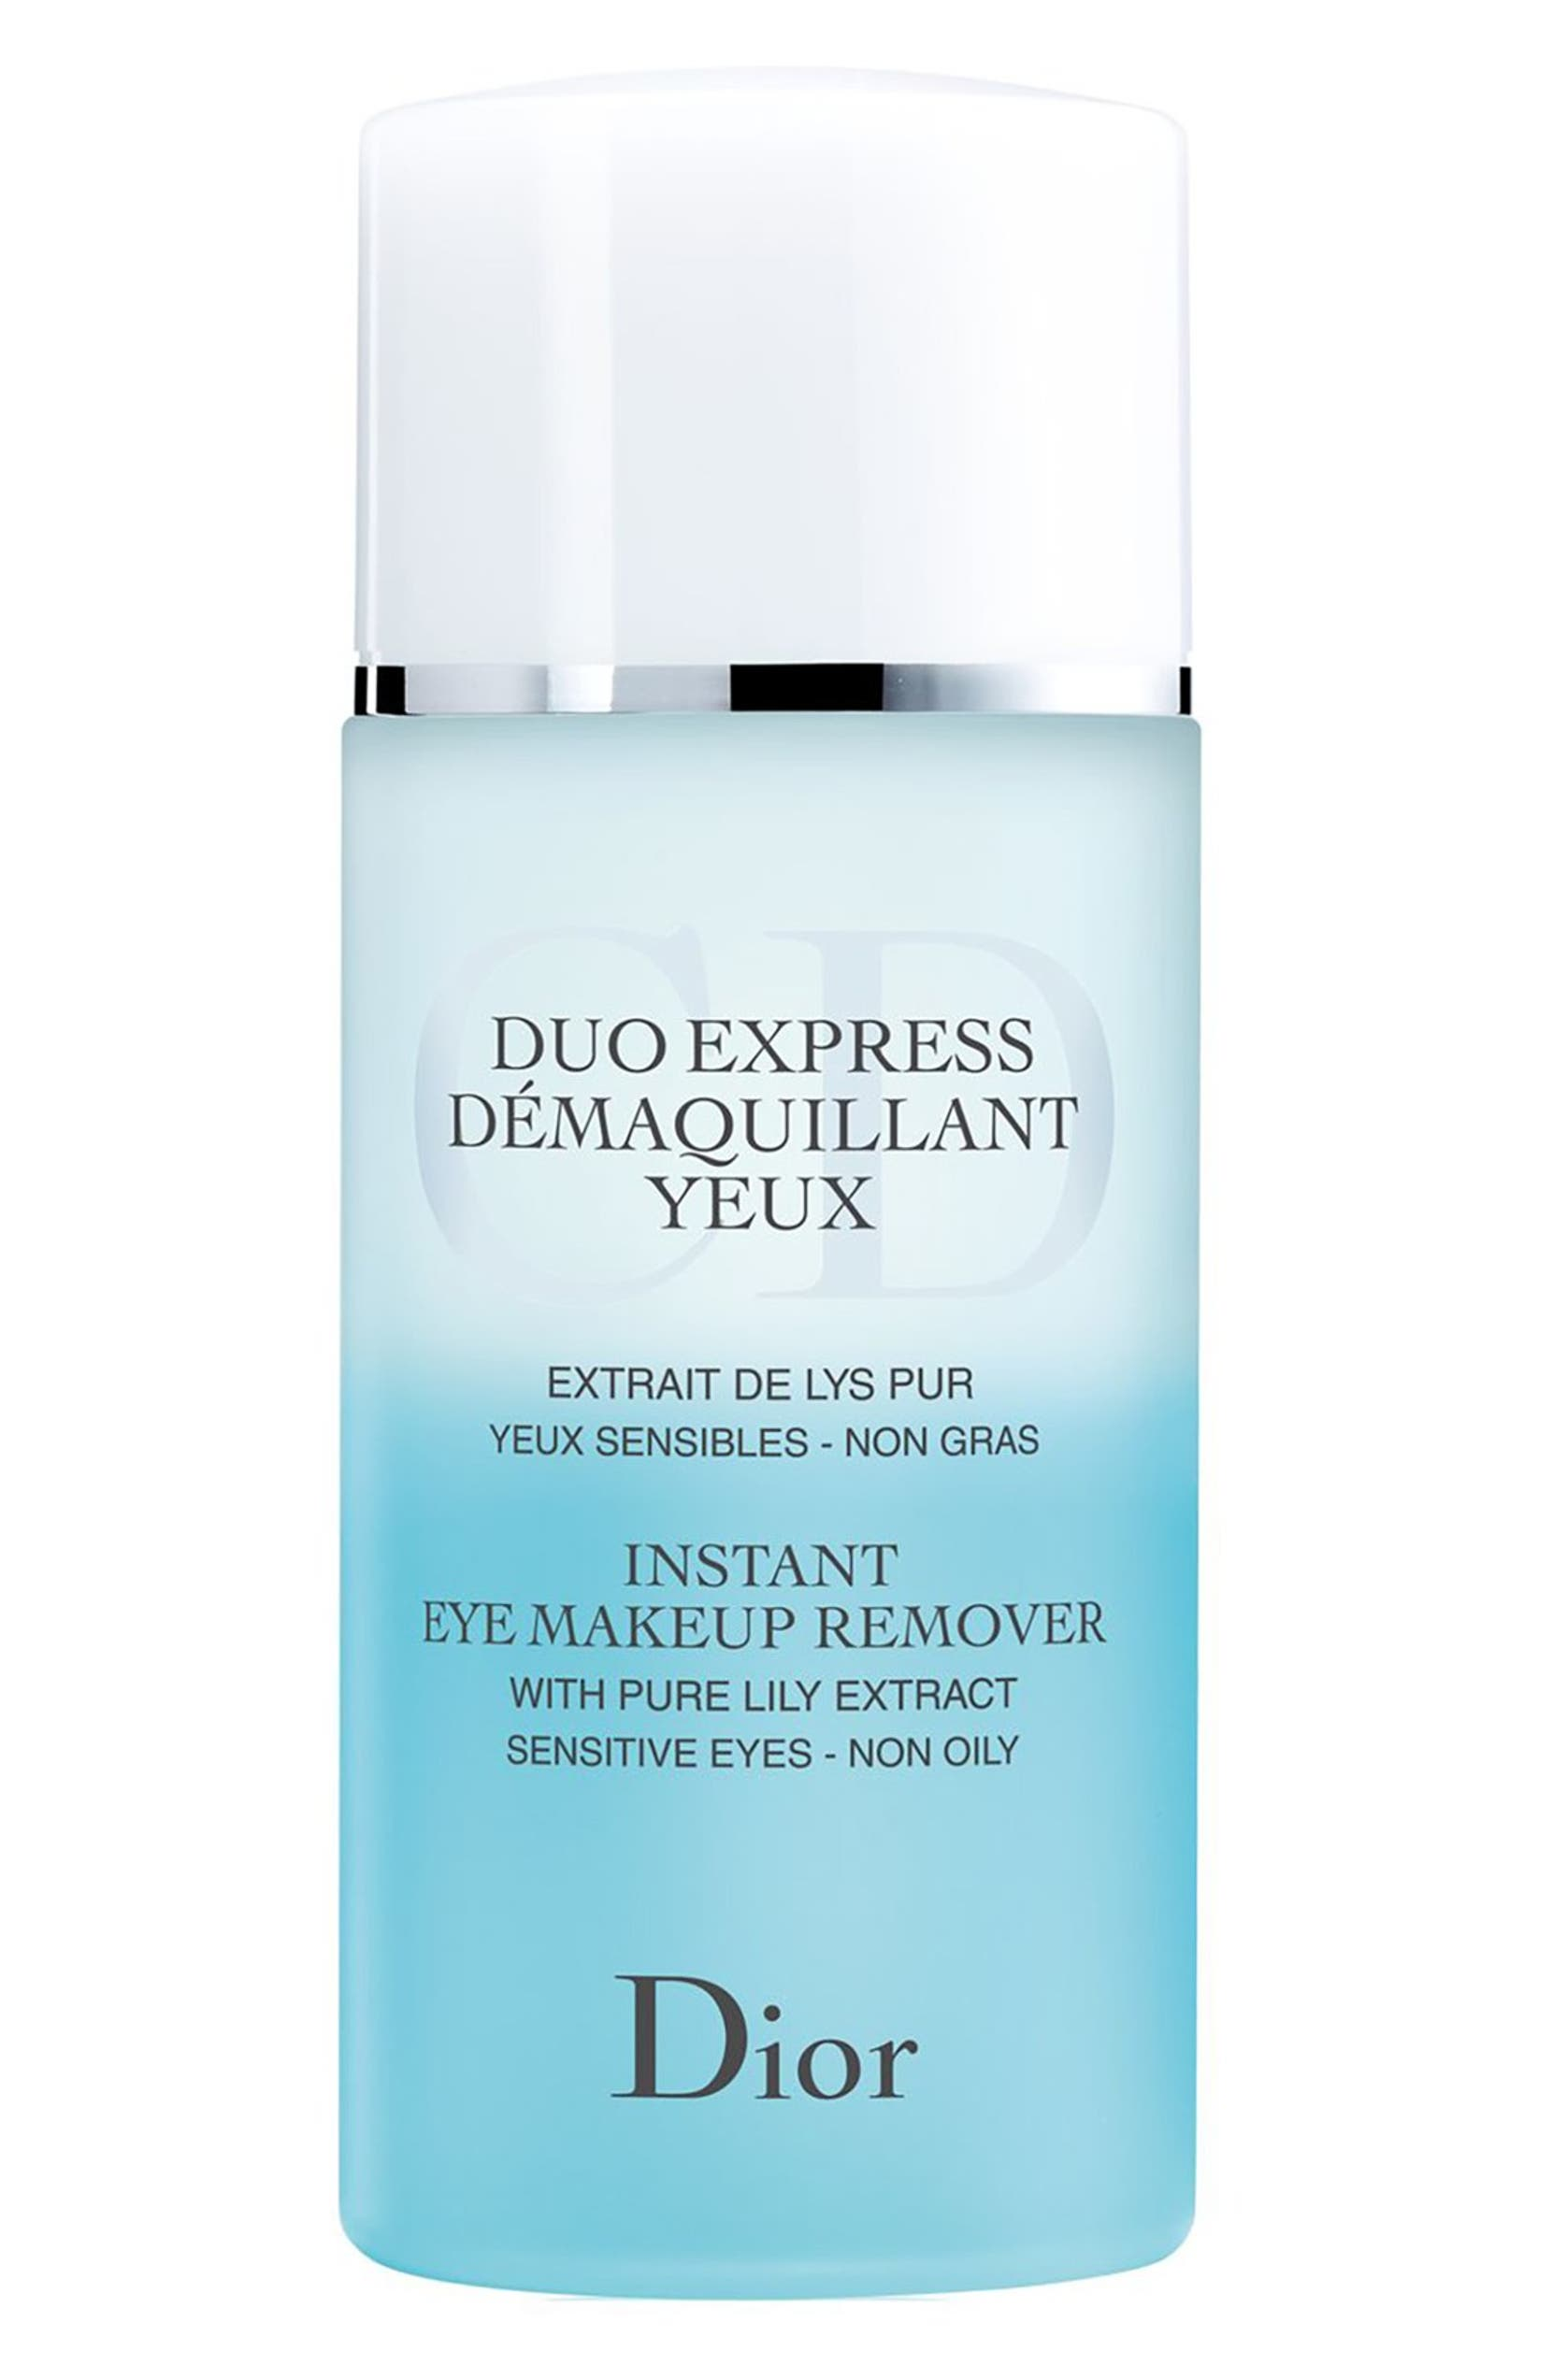 Dior Instant Eye Makeup Remover Ings